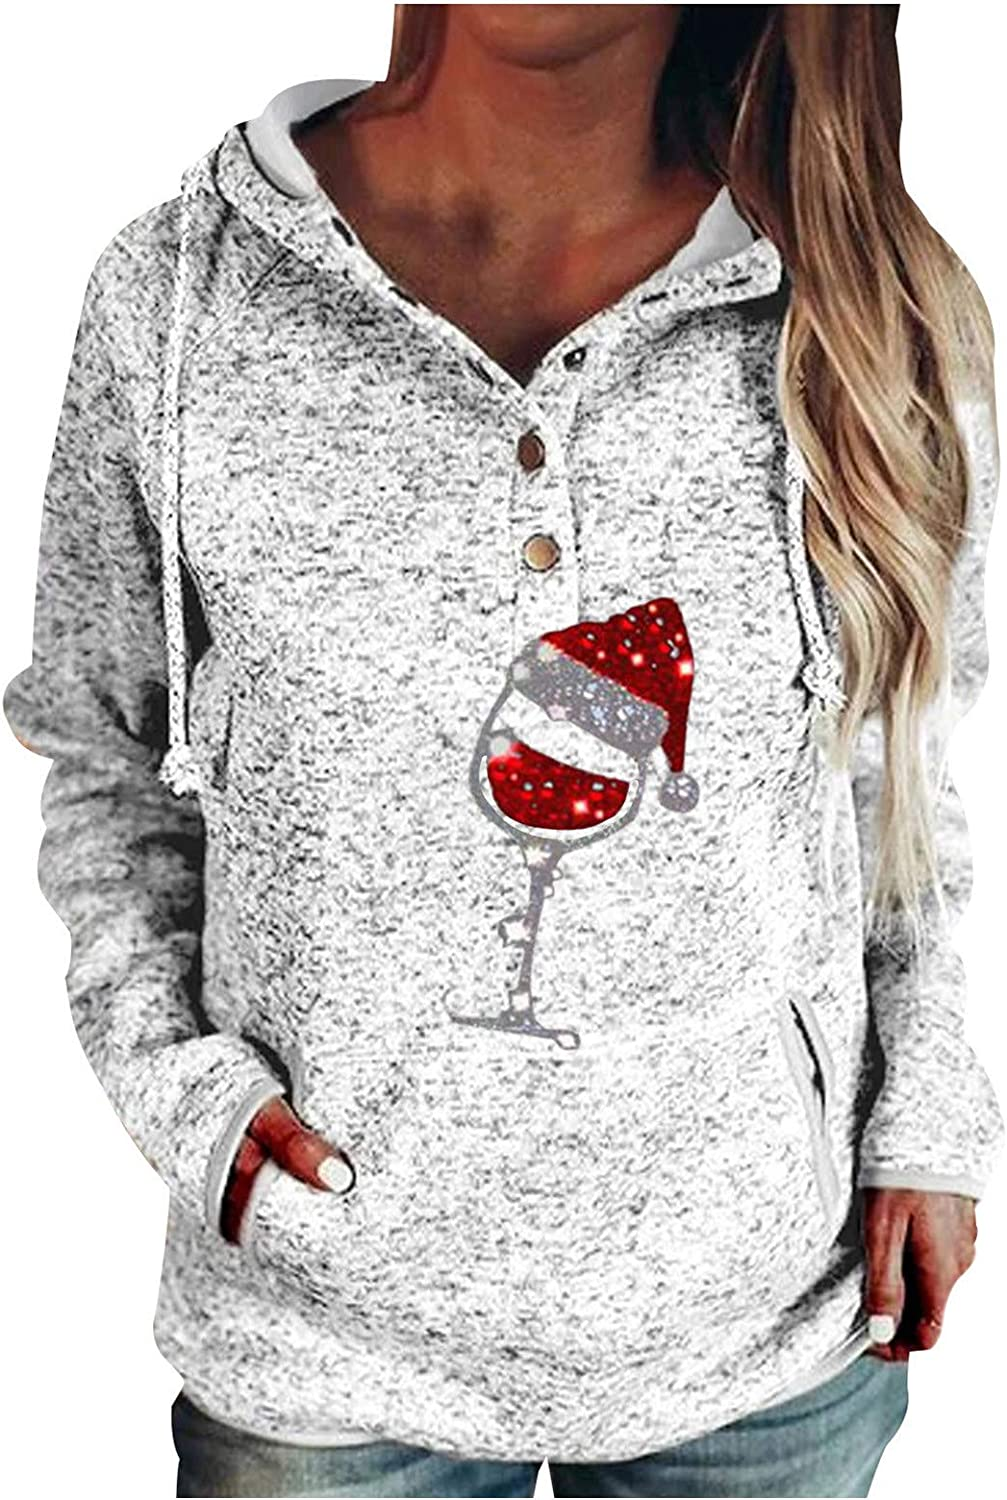 Womens Hoodies Pullover,Women Buttons Collar Christmas Printing Hooded Sweatshirt Pullover Pocket Top